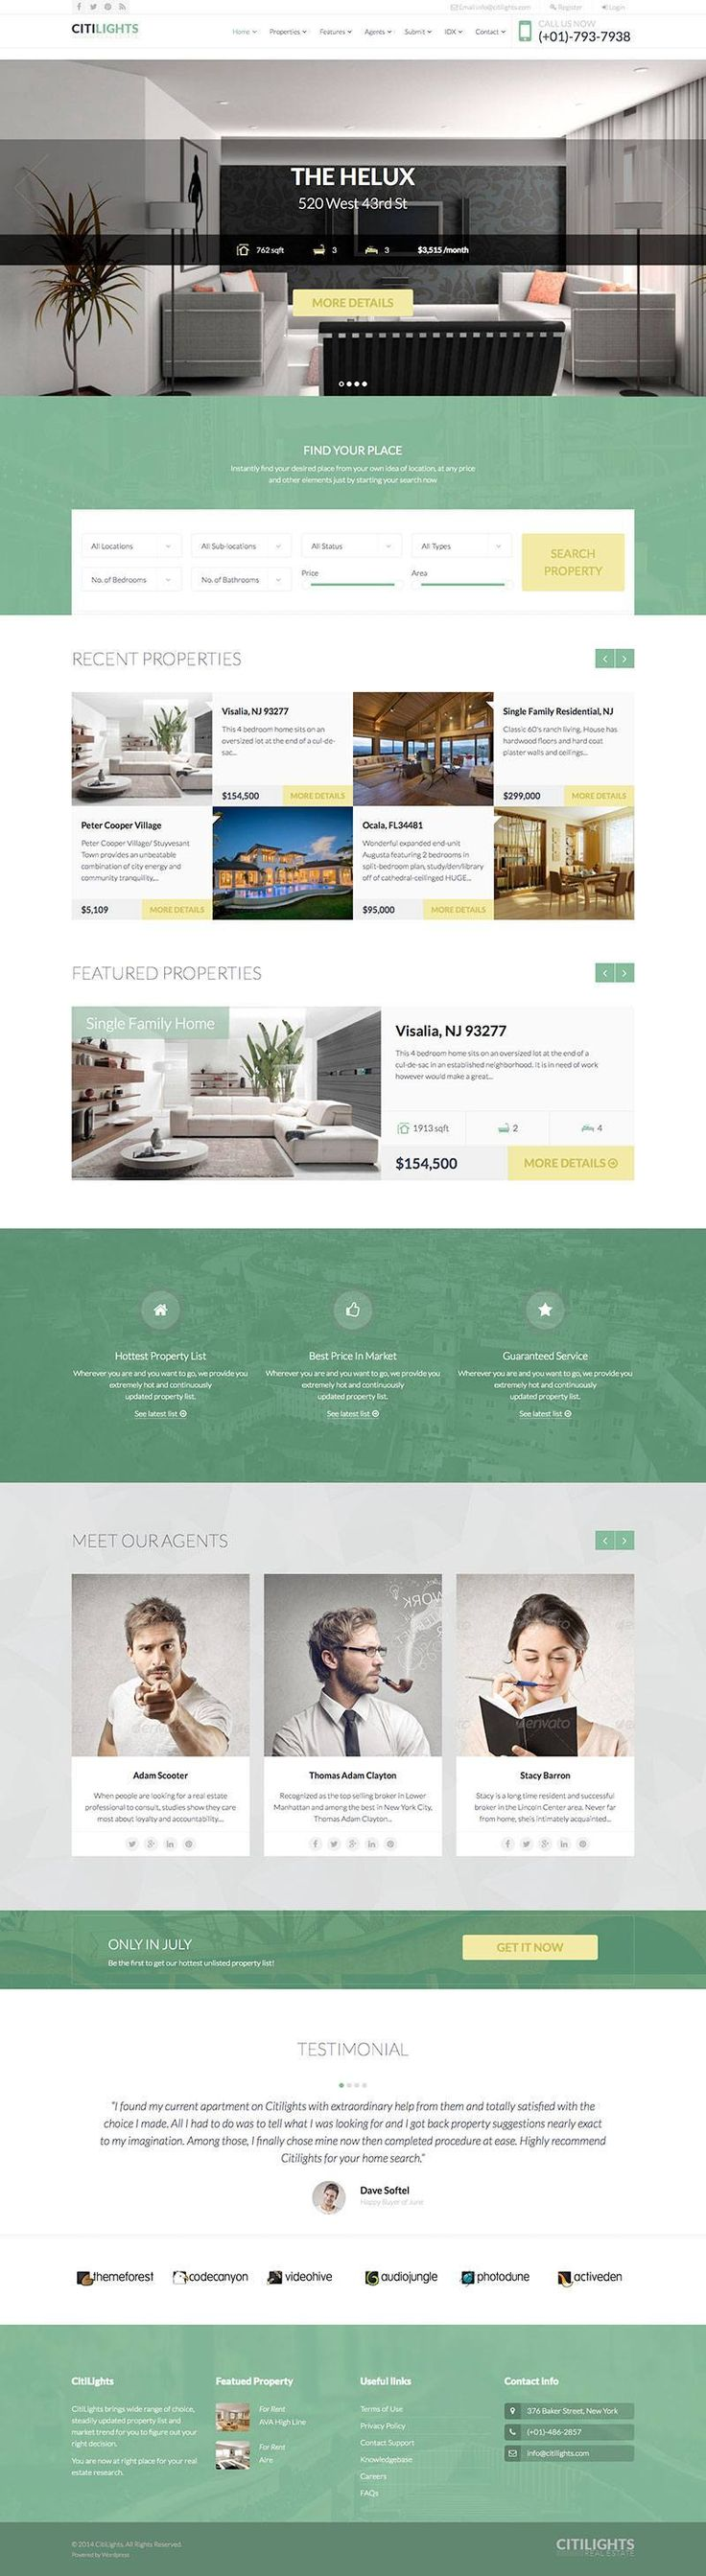 CitiLights is a modern real estate premium WordPress theme that's perfect for showcasing agents and their inventory of lovely homes and apartments. - WPExplorer